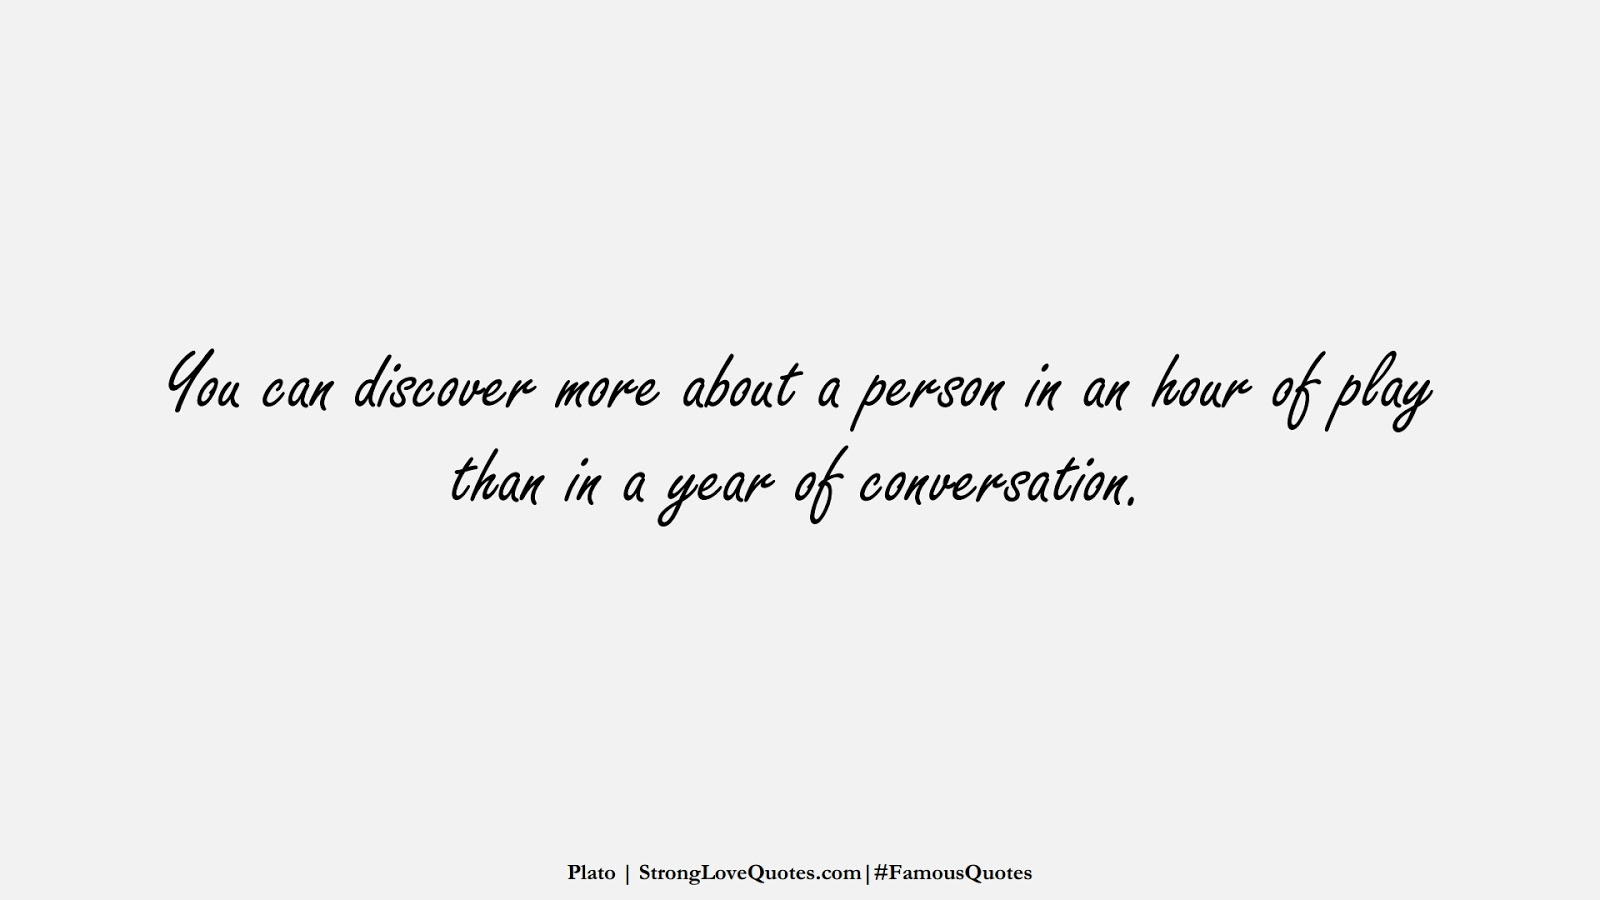 You can discover more about a person in an hour of play than in a year of conversation. (Plato);  #FamousQuotes